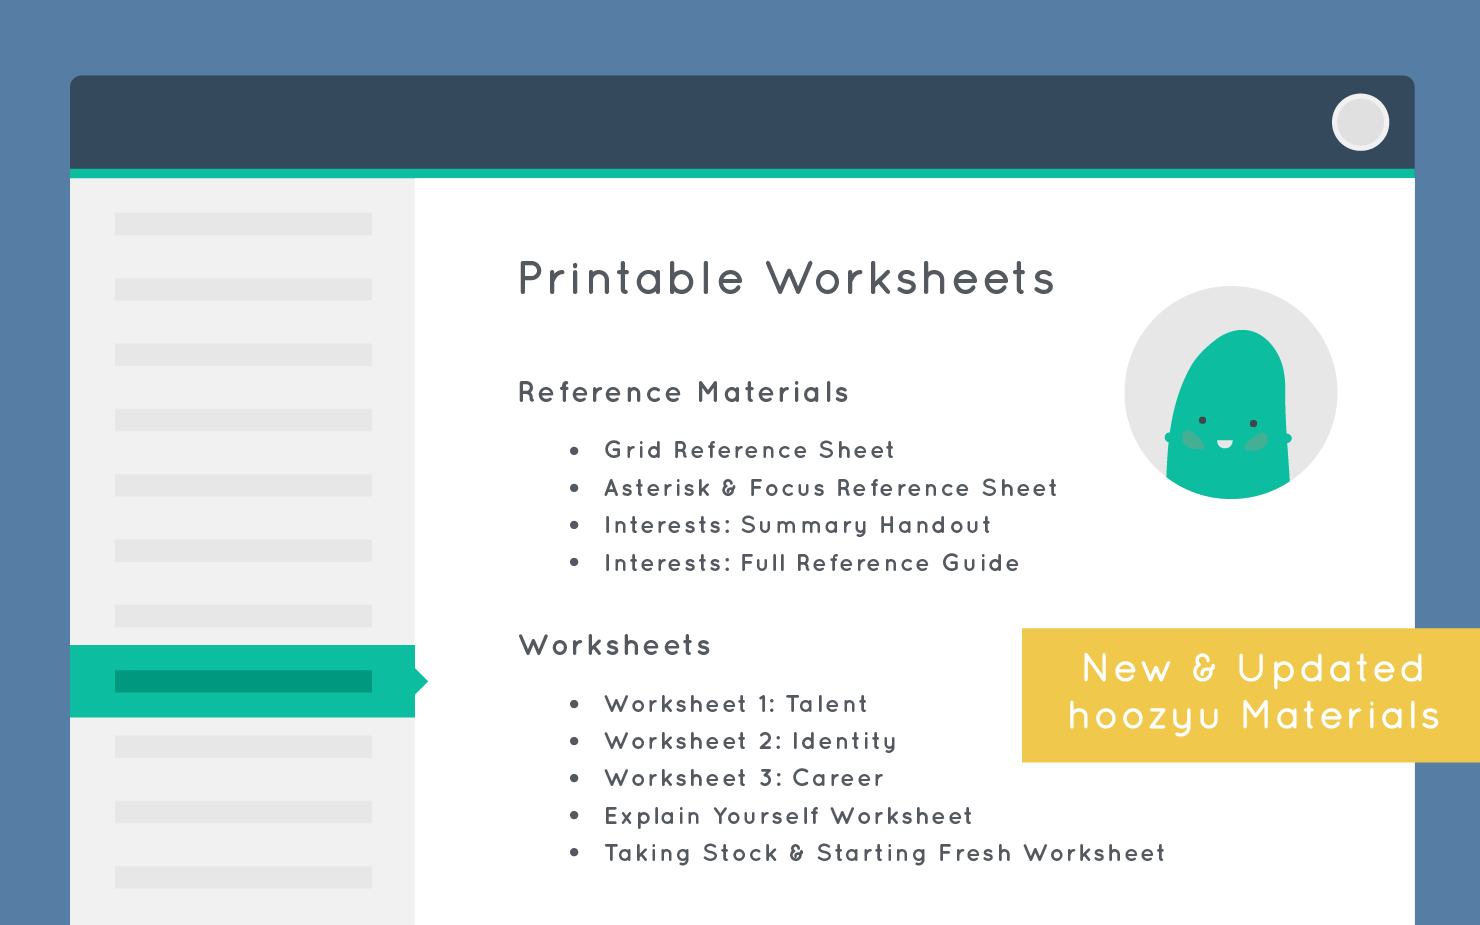 worksheets & materials update